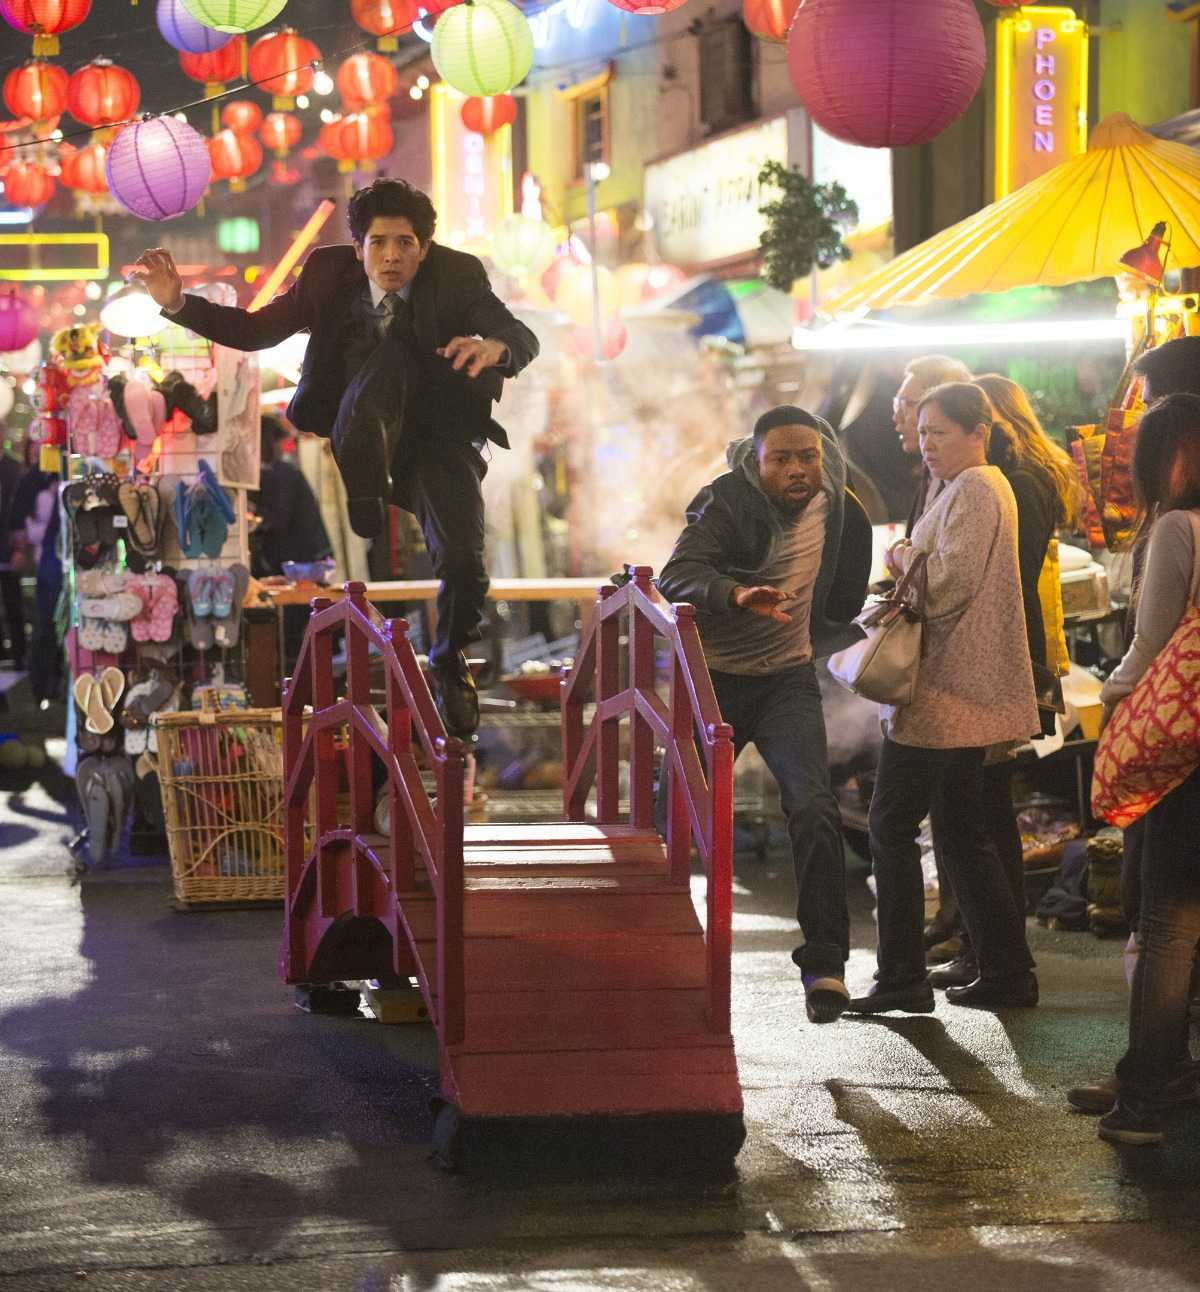 'Rush Hour' TV Series: Reasons Why It's unwelcome Compared to The Movie